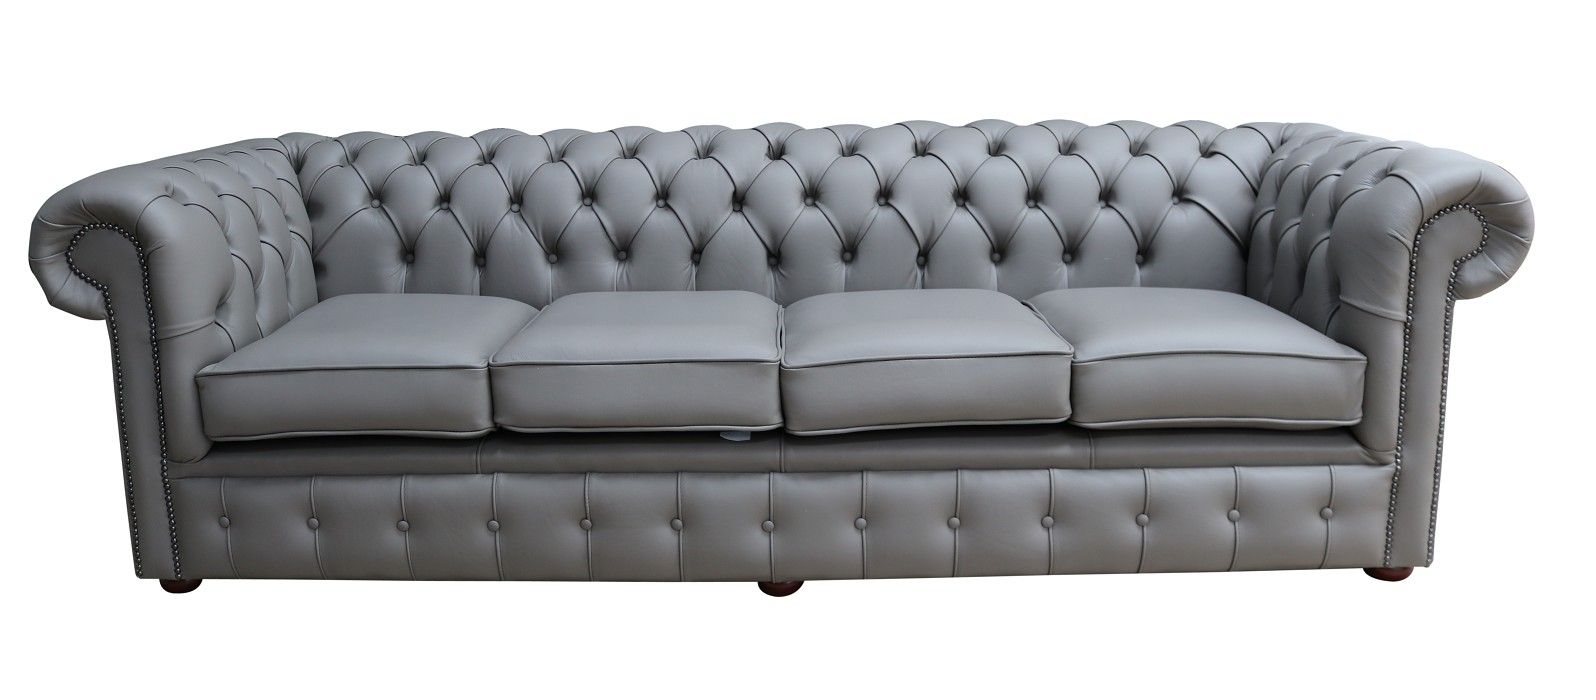 Chesterfield 4 Seater Settee Silver Grey Leather Sofa Offer